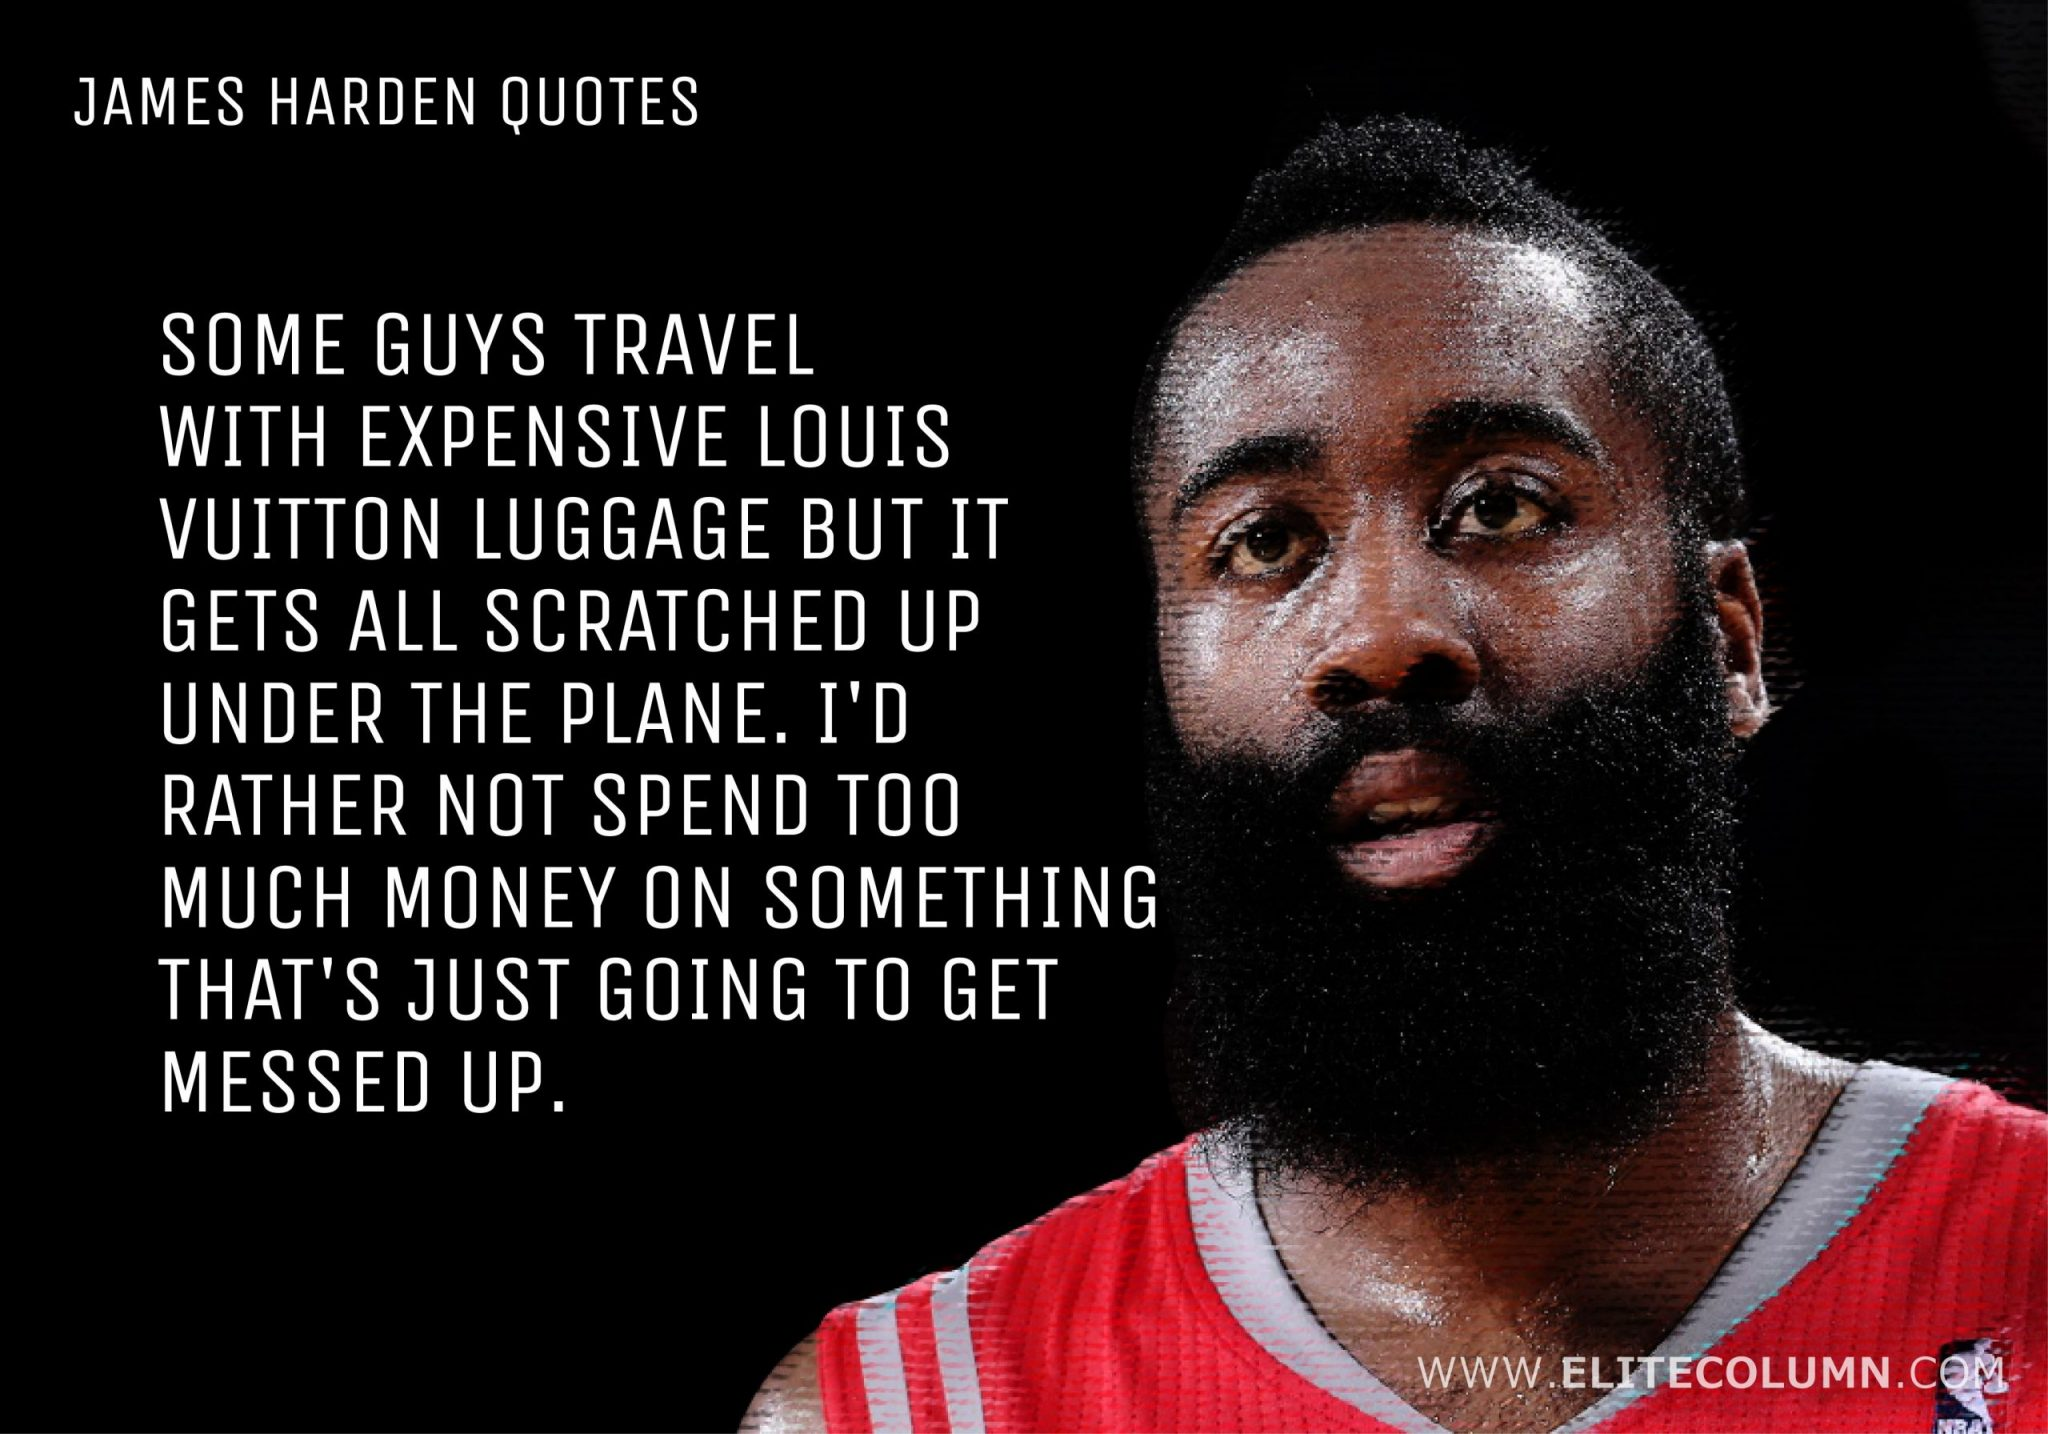 James Harden Quotes (12)